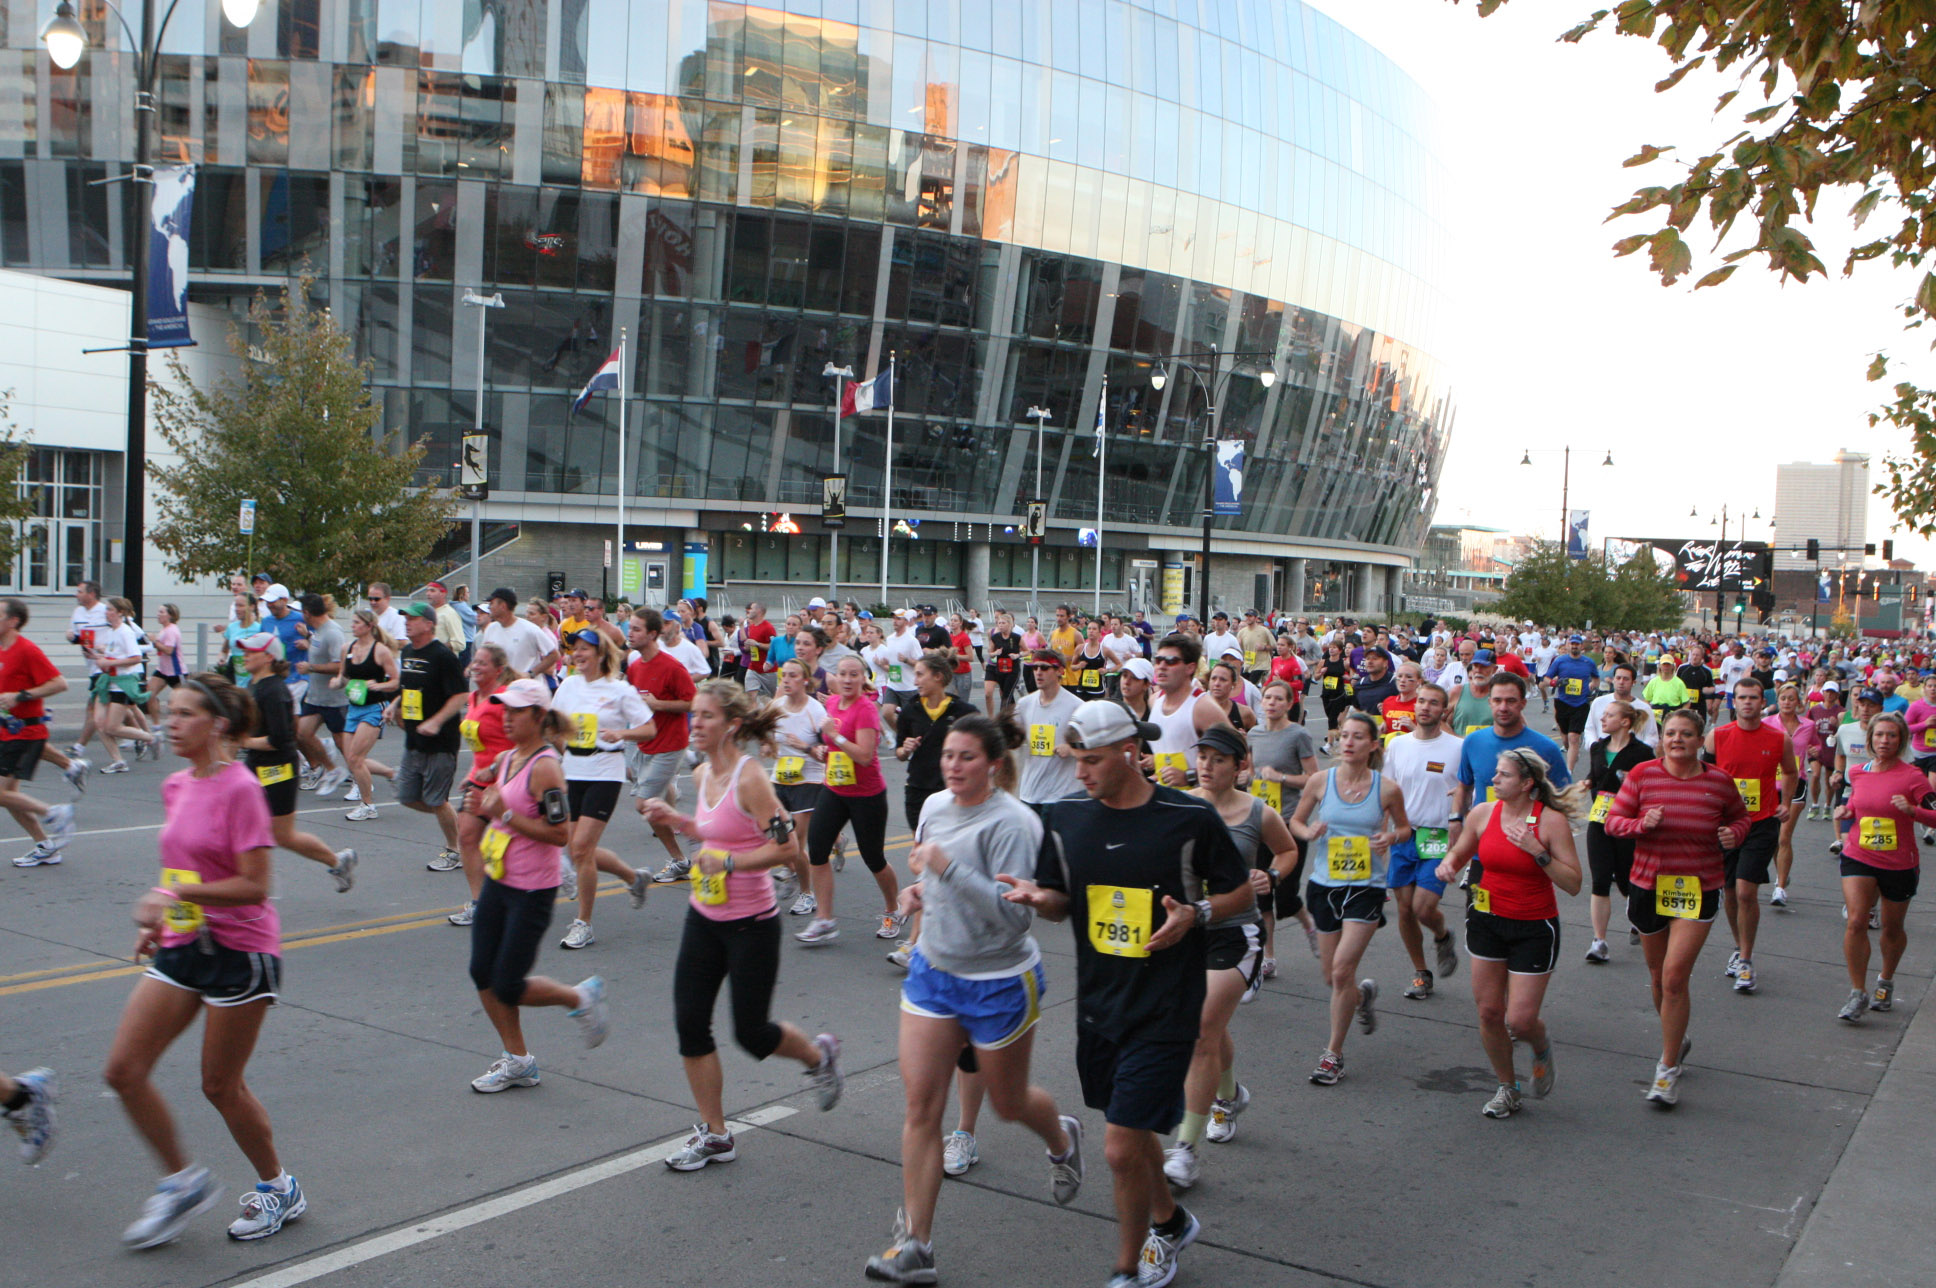 Kansas City Marathon has an Economic Impact of about $8.6 million to the Kansas City Economy